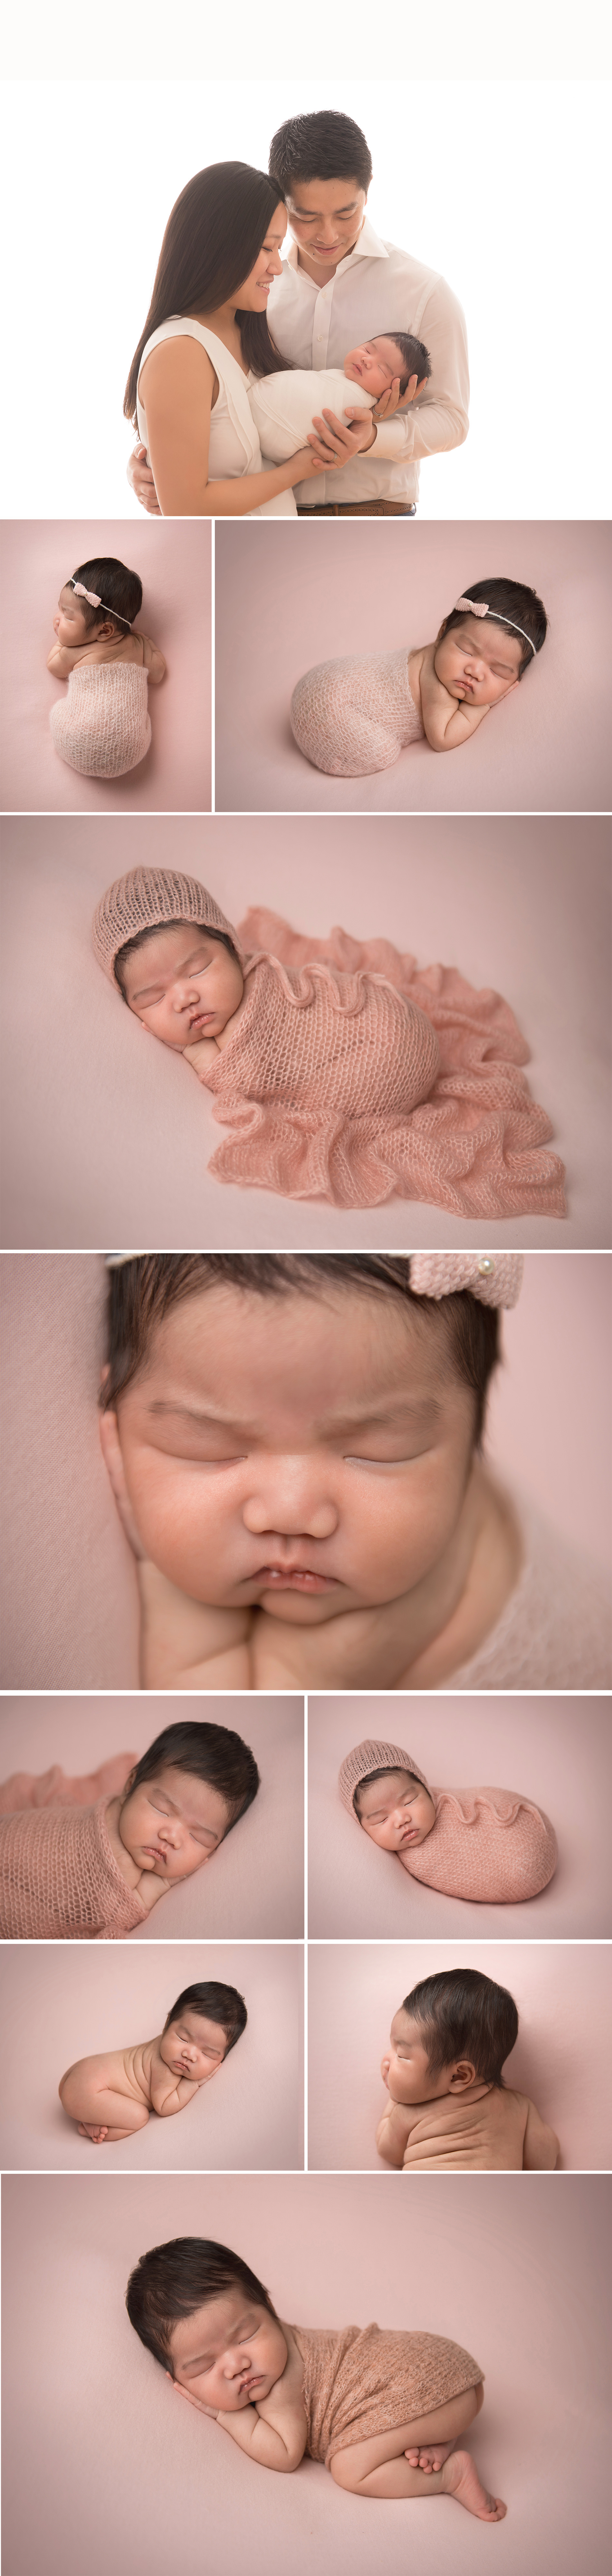 nyc premier newborn photographer studio